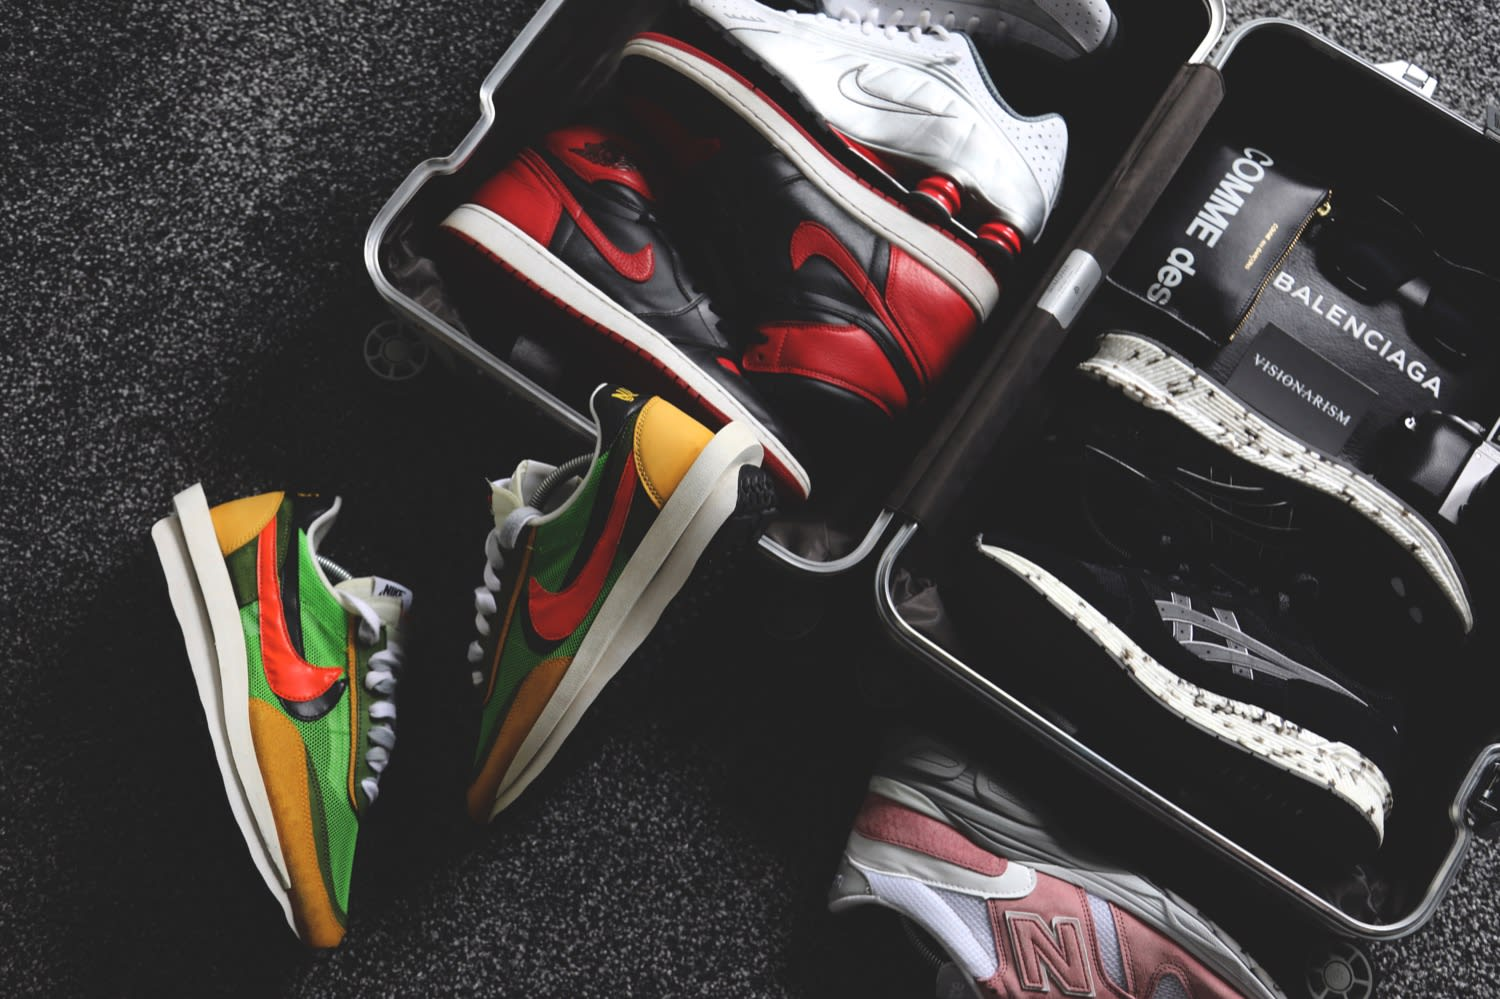 Ste Wing's Rimowa flight case packed with Sacai x Nike LDWaffle, AJ1 Bred, Nike Shox R4, New Balance 770.9, and Visionarism x ASICS TIGER HyperGEL-LYTE